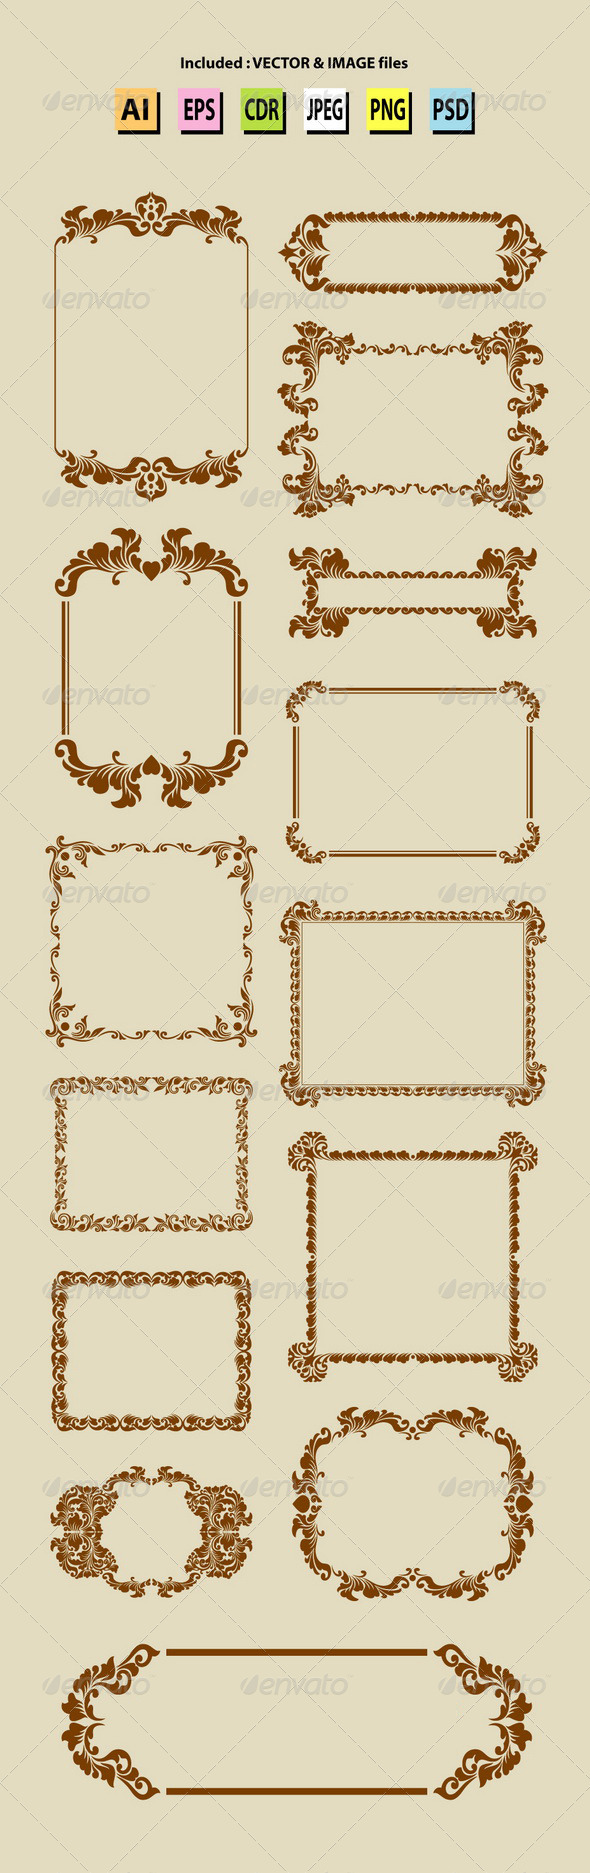 GraphicRiver Vintage Label Ornaments 6580832